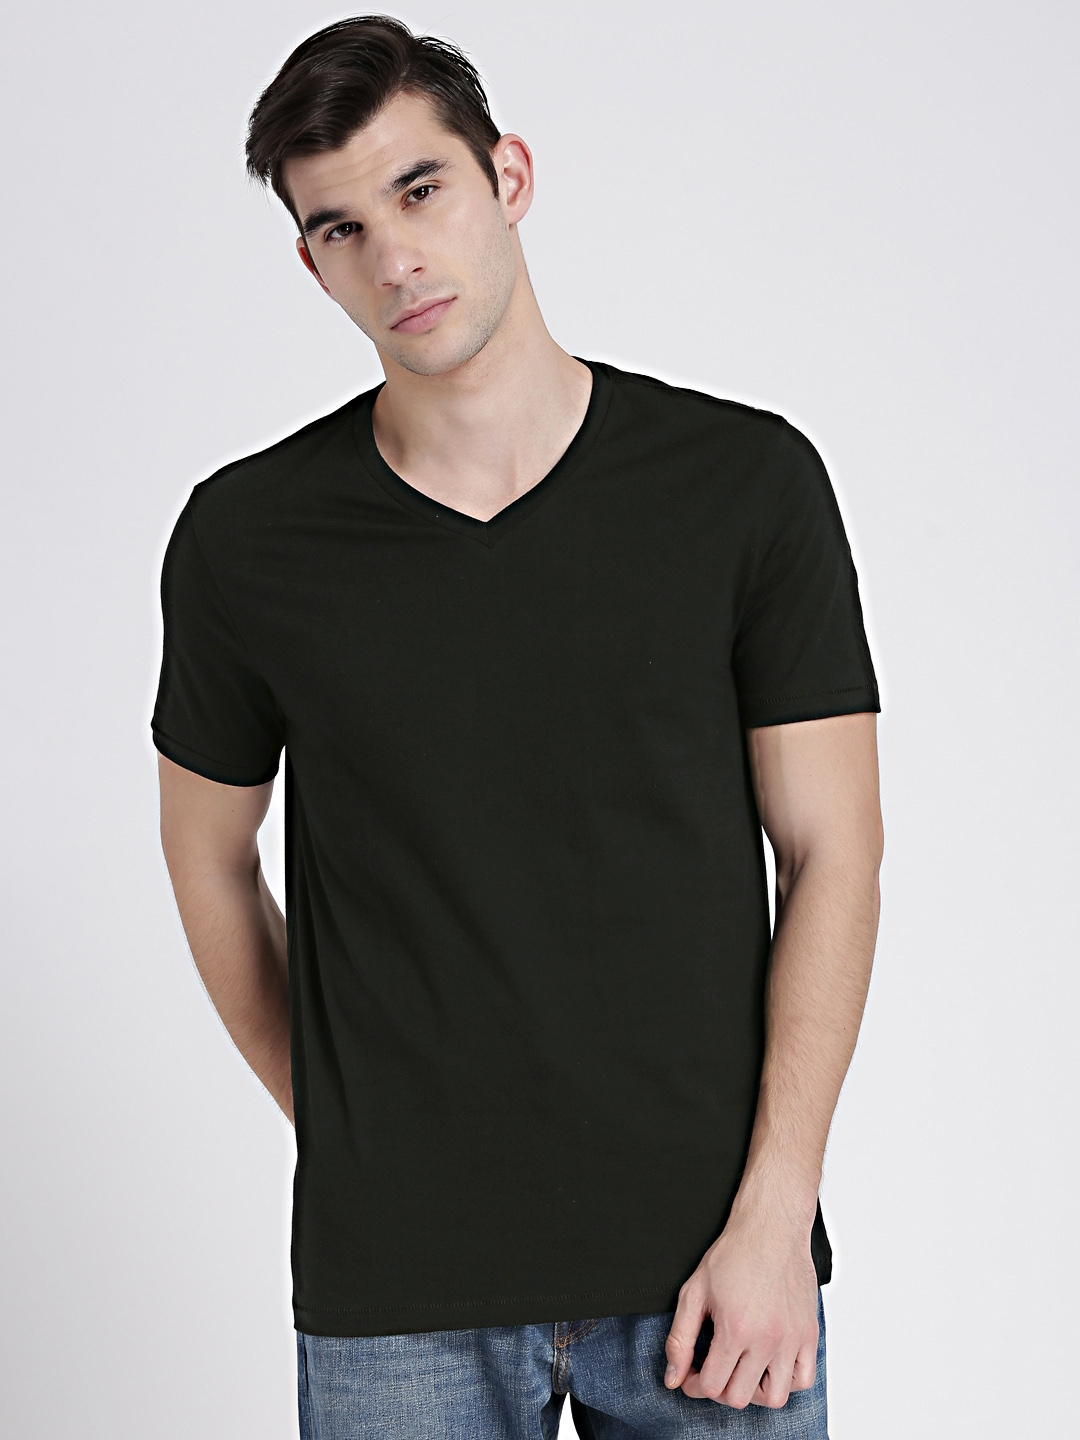 6c4d9b0d31fe01 Buy GAP Men s Classic V T Shirt - Tshirts for Men 7226770